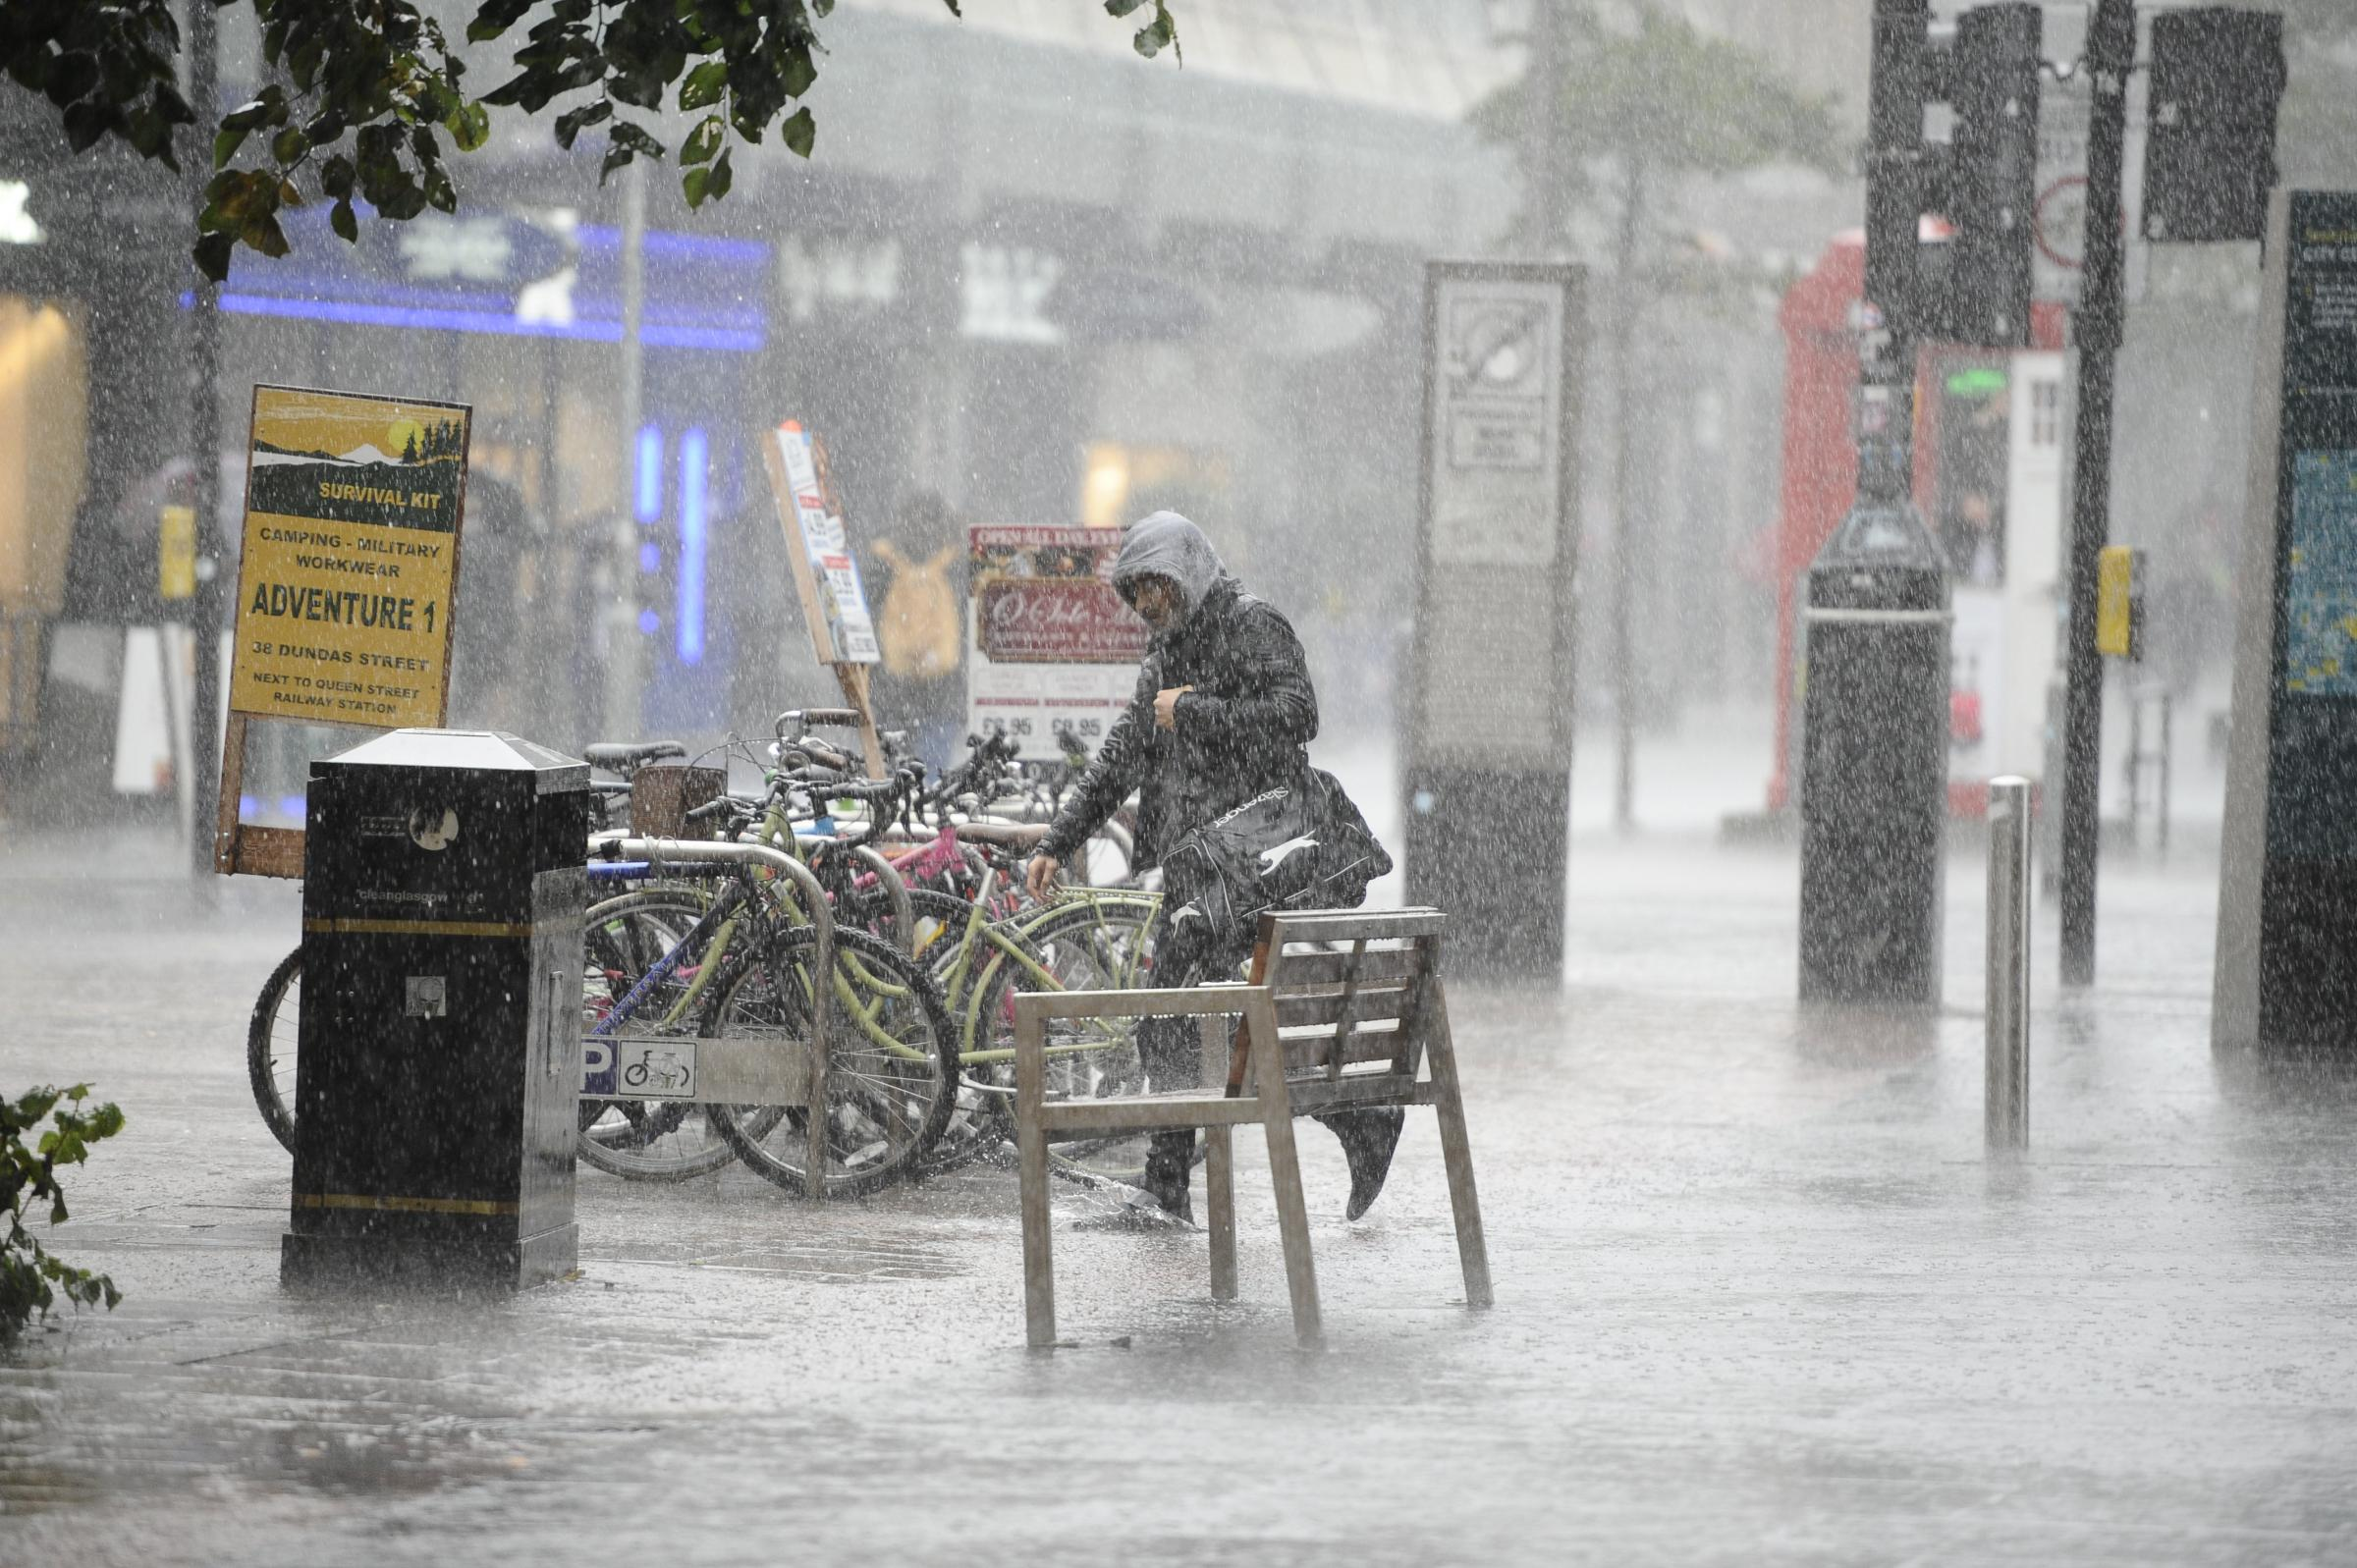 Glasgow set to be SOAKED with non-stop heavy rain this weekend